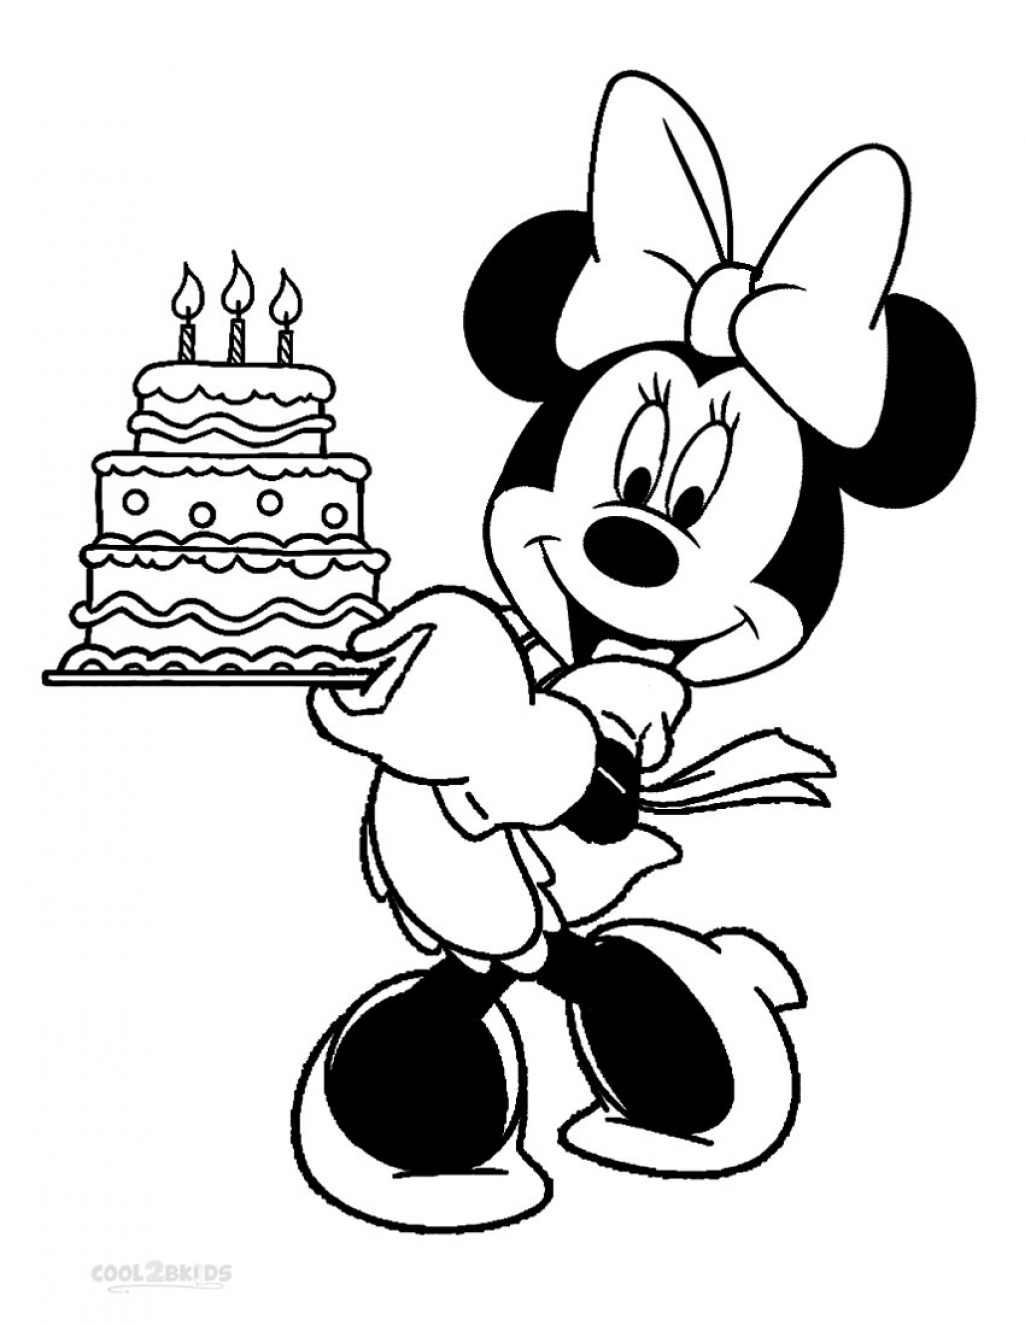 Free disney minnie mouse coloring pages for Minnie mouse halloween coloring pages